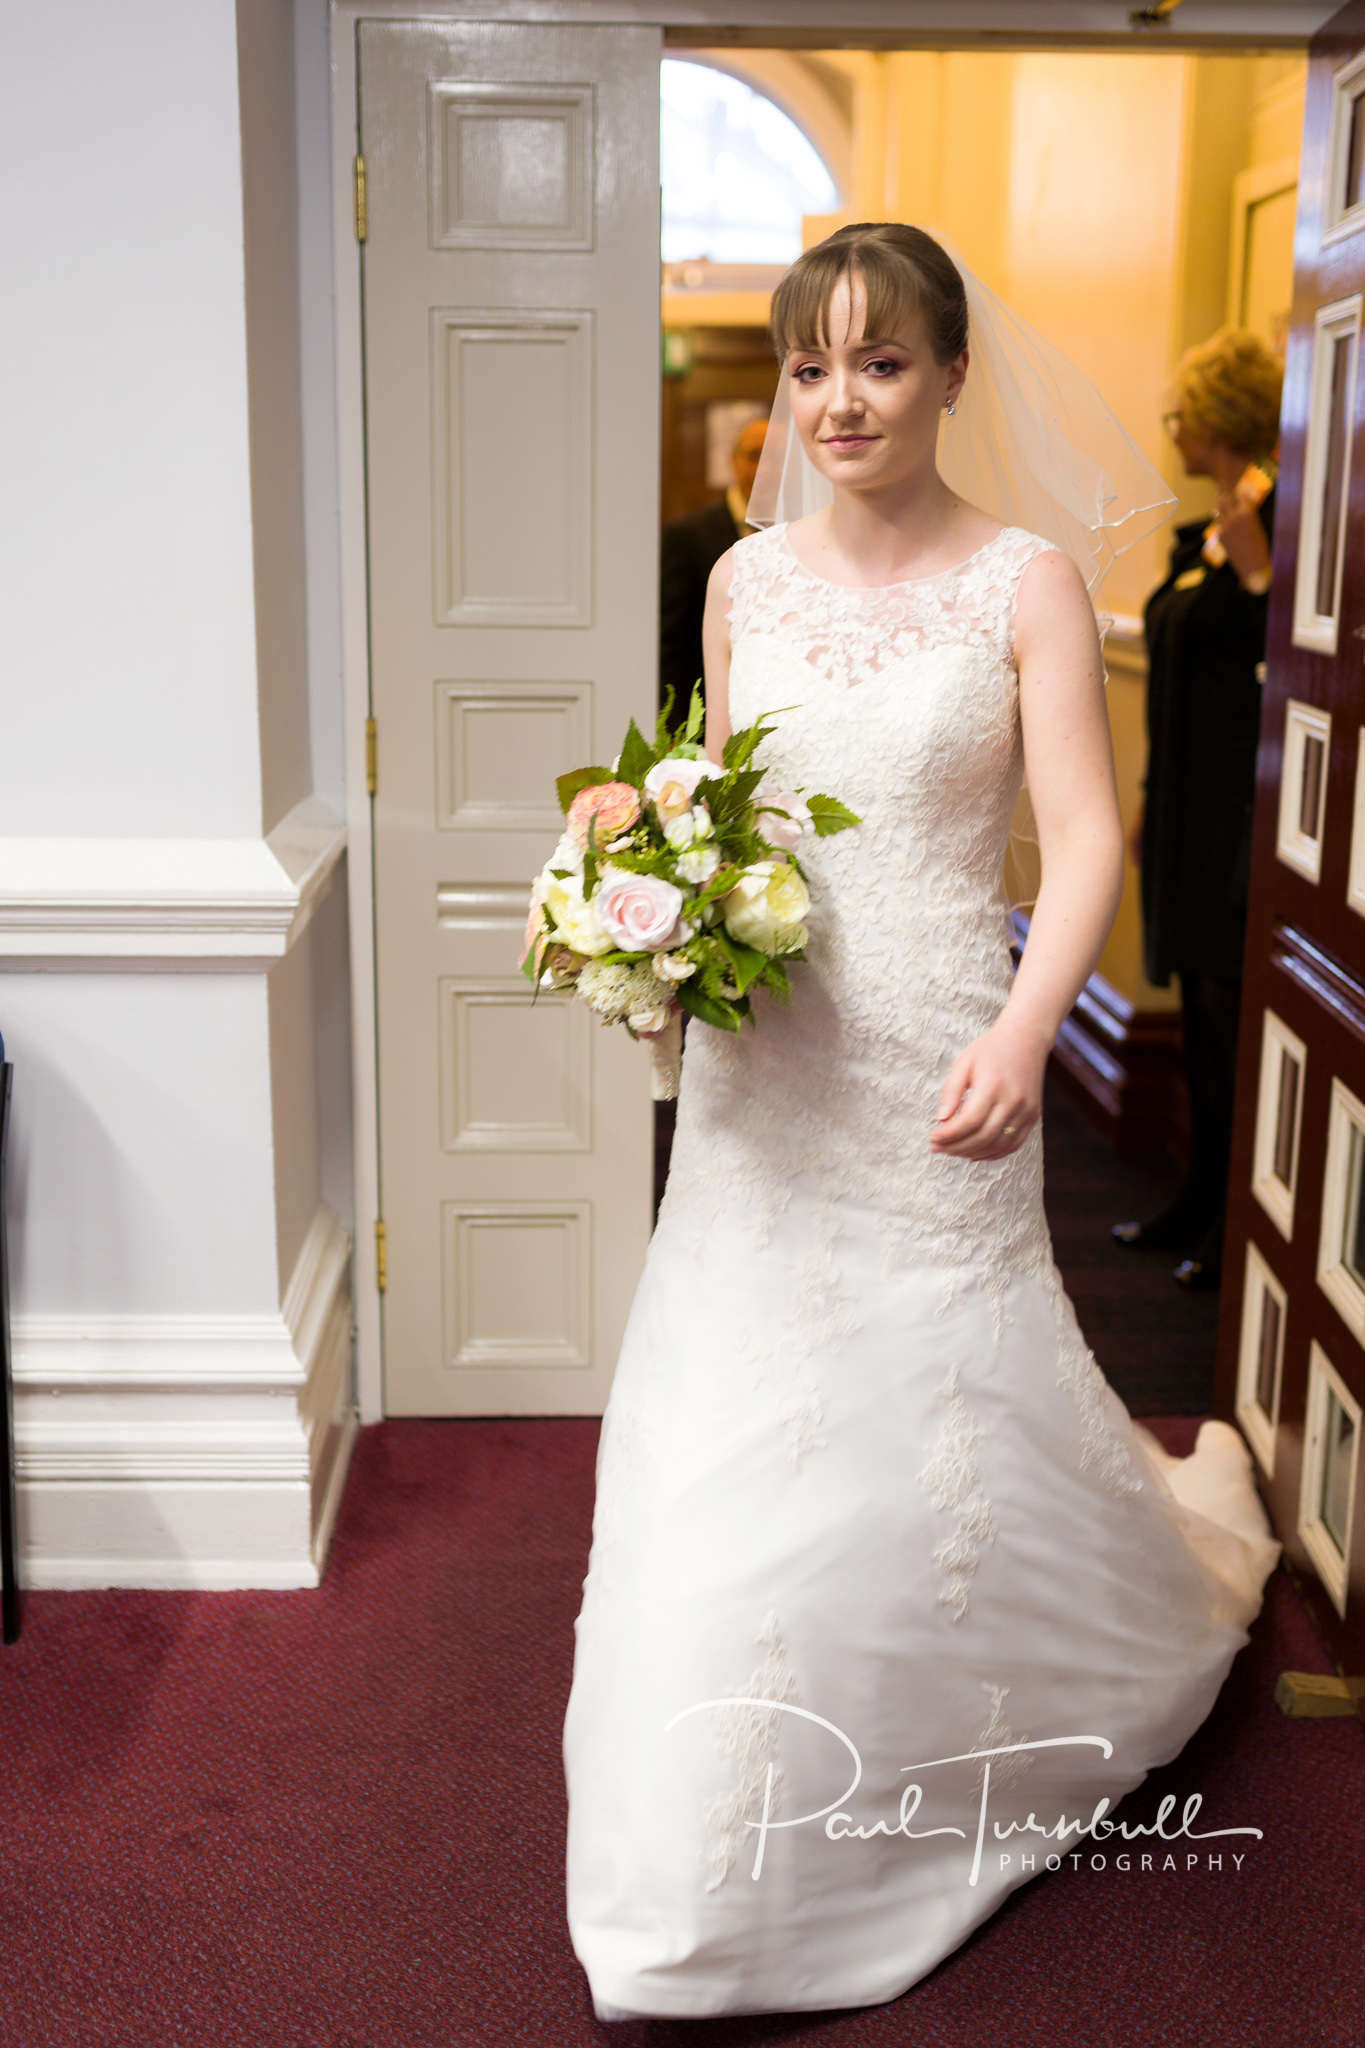 wedding-photographer-pontefract-yorkshire-laura-keanu-014.jpg